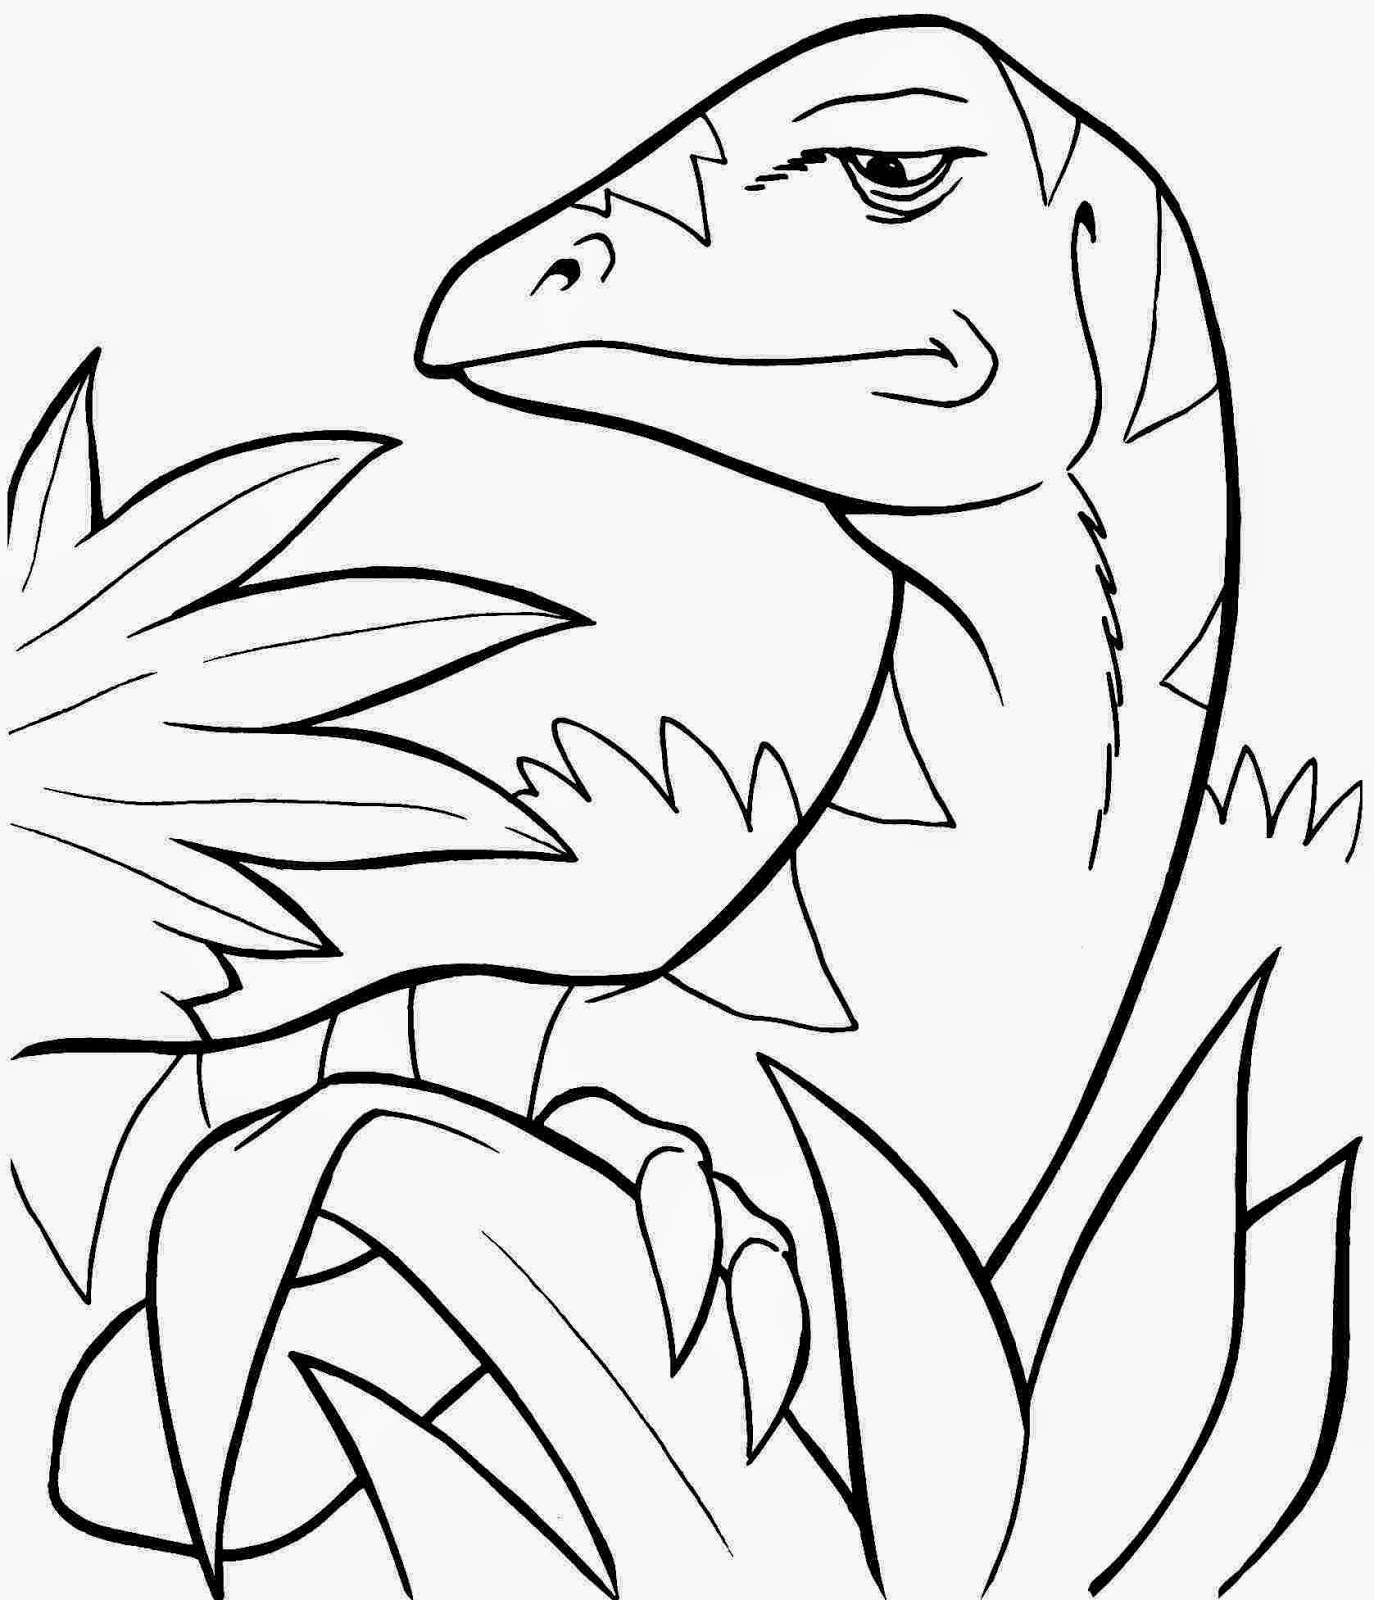 dinosaurs to colour in dinosaur coloring pages to download and print for free in dinosaurs to colour